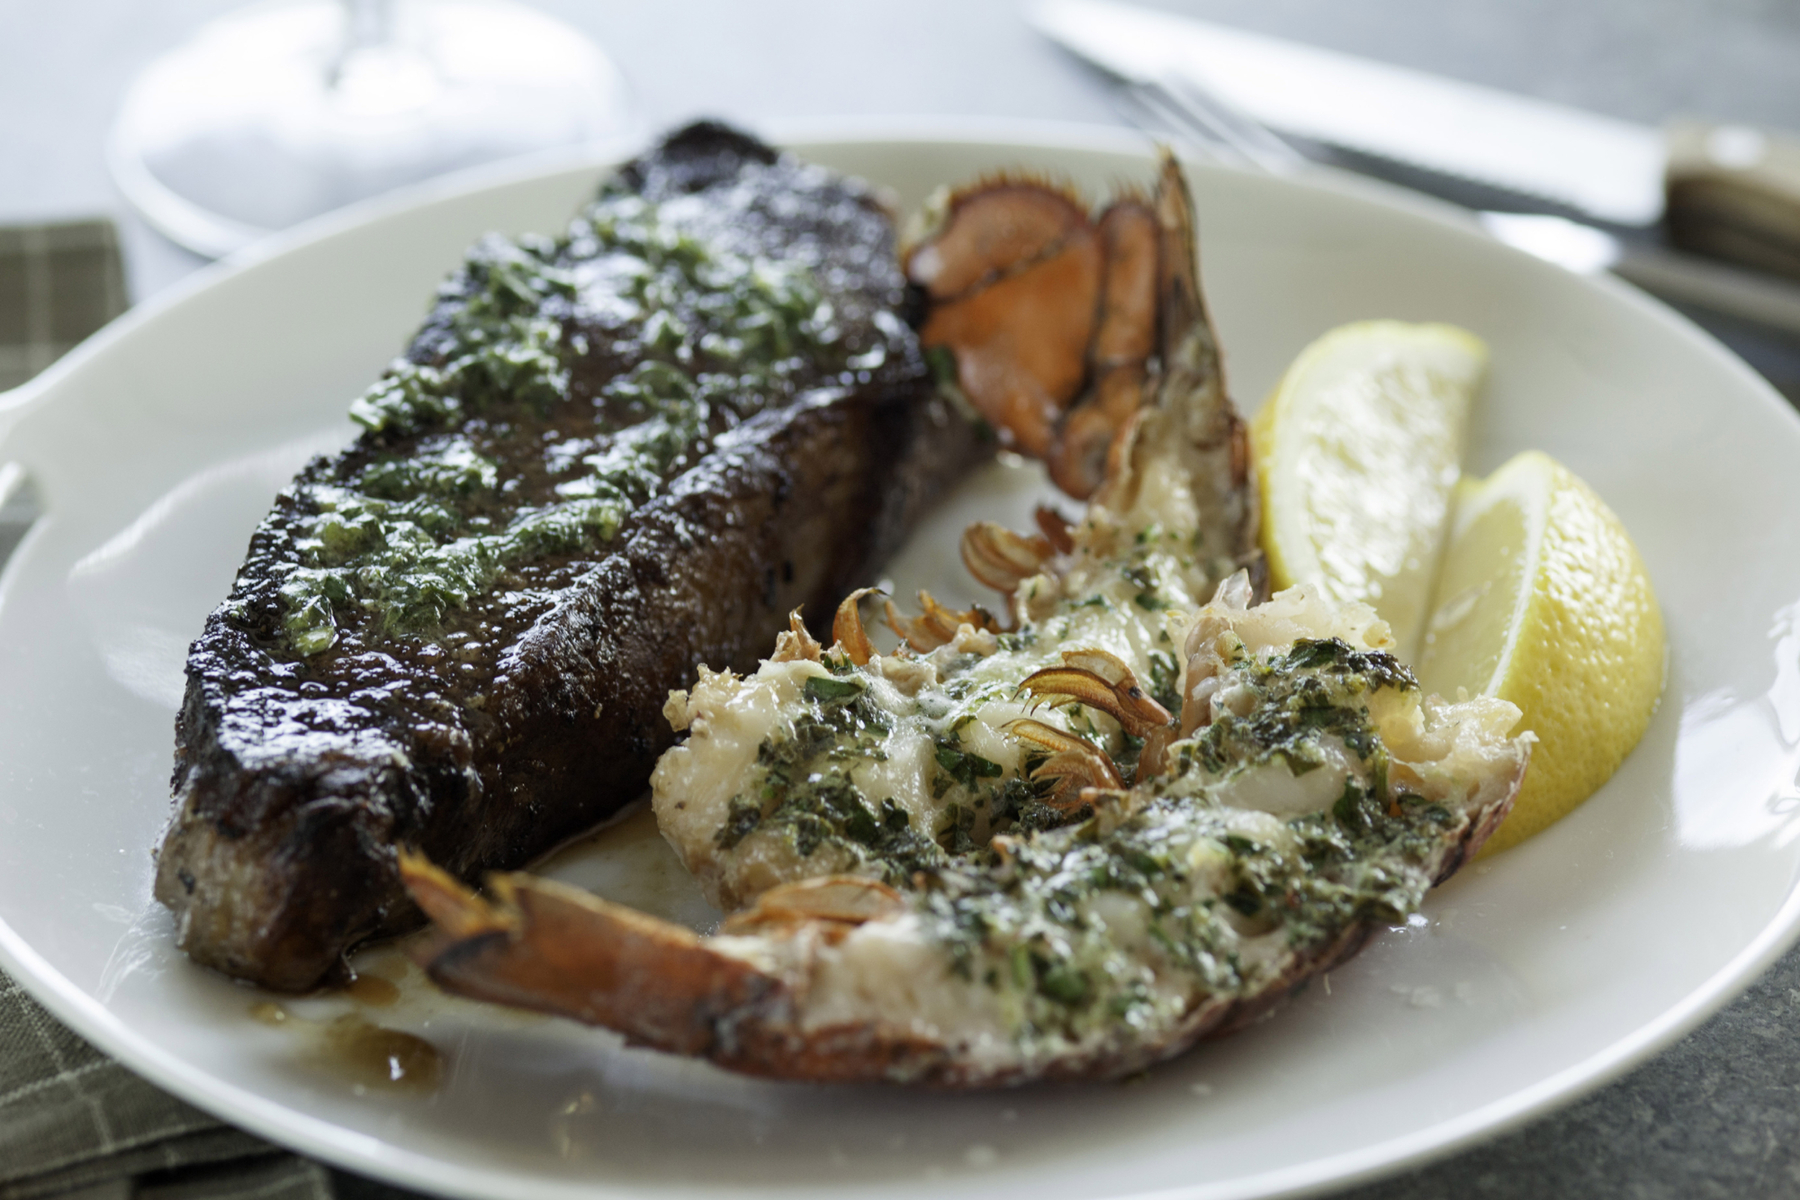 WFM-VDday-HerbRoastedLobsterAndSteak